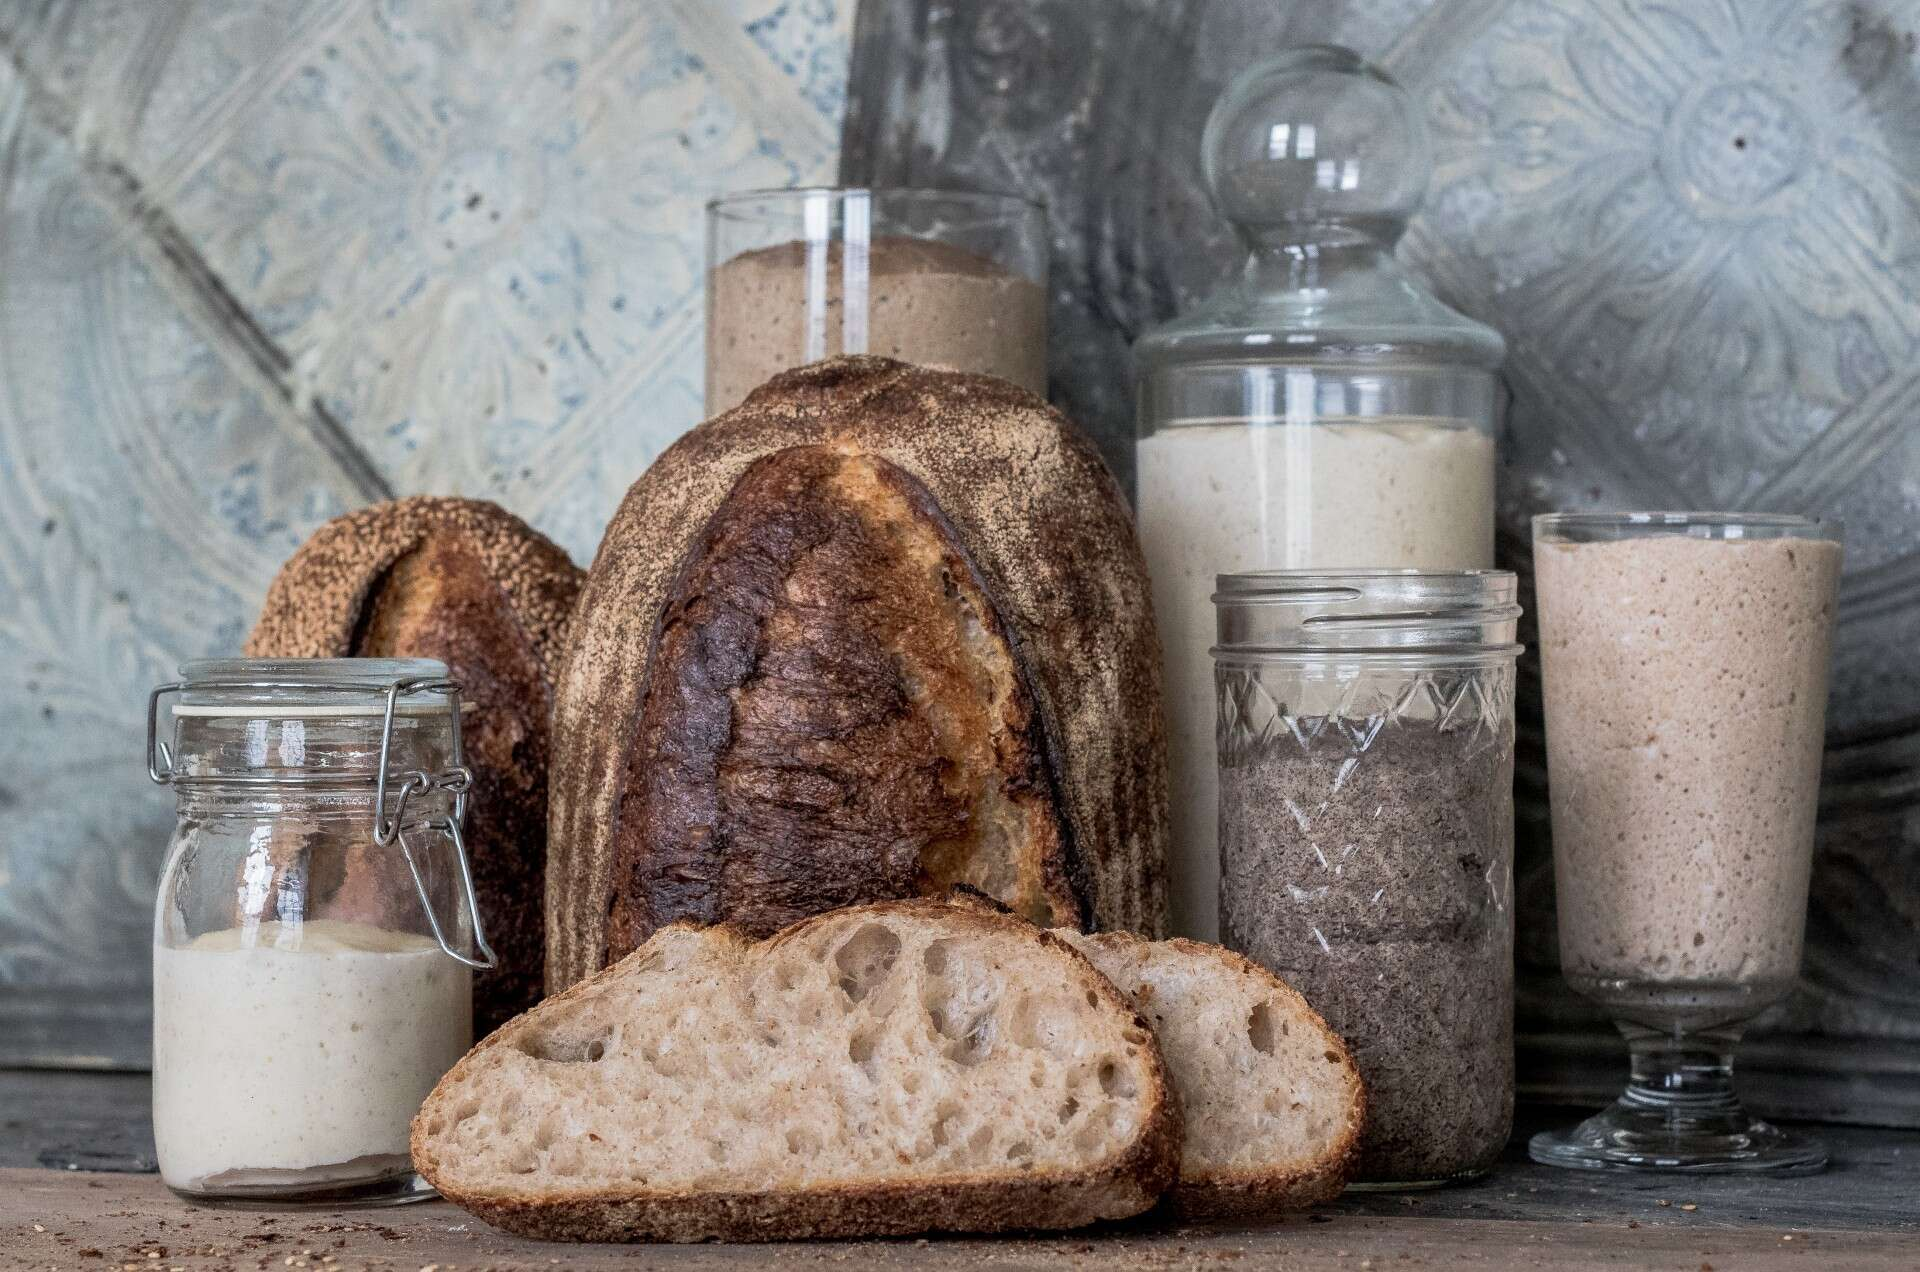 A series of preferments in jars on a table with bread